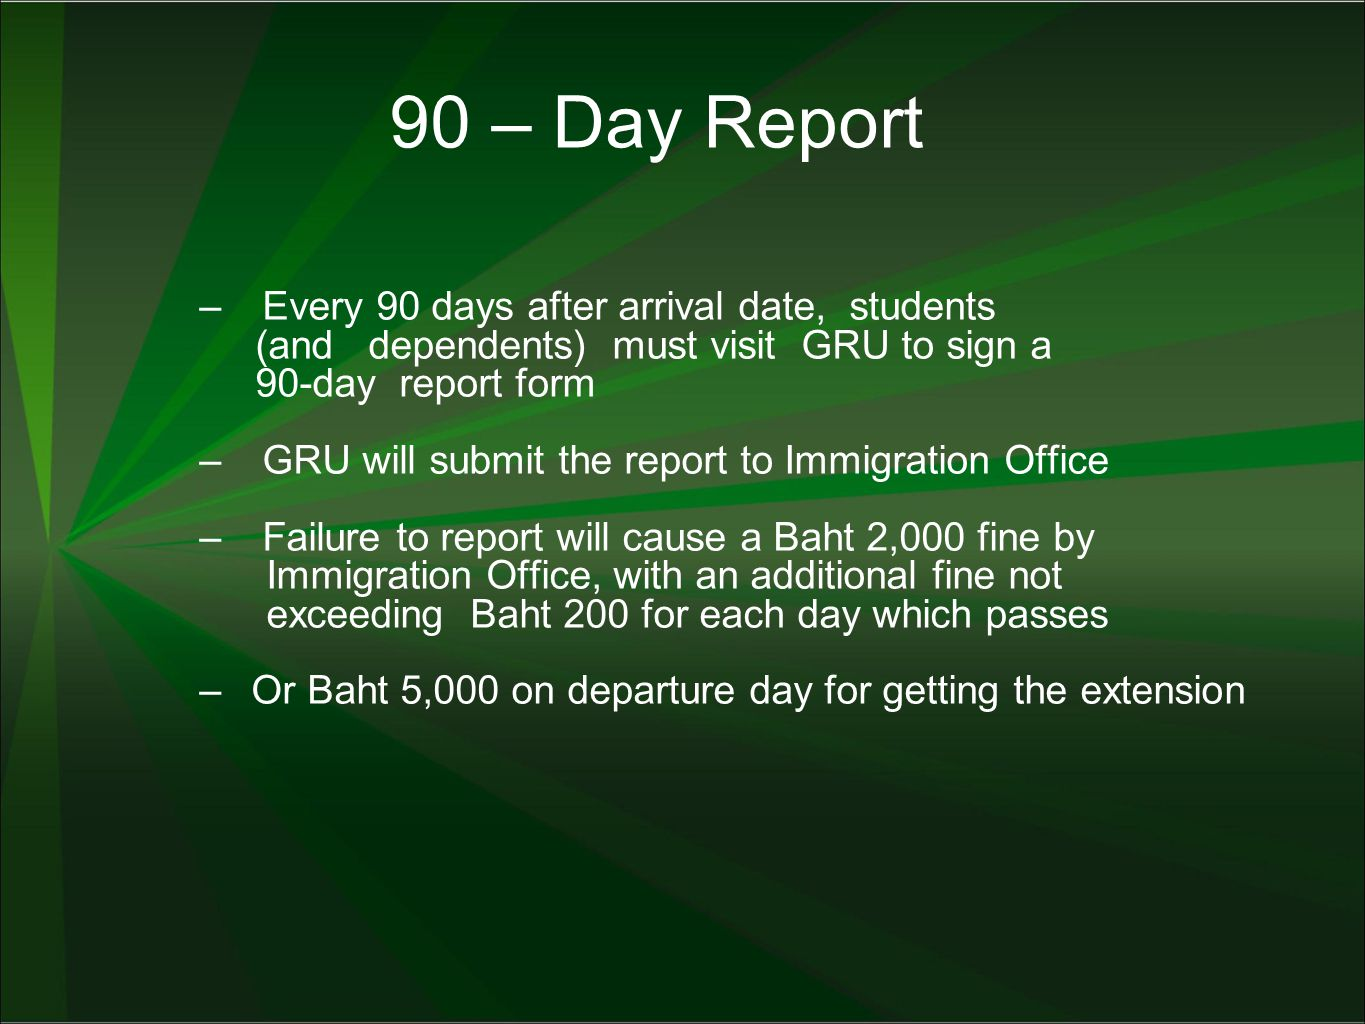 90 – Day Report – Every 90 days after arrival date, students (and dependents) must visit GRU to sign a 90-day report form – GRU will submit the report